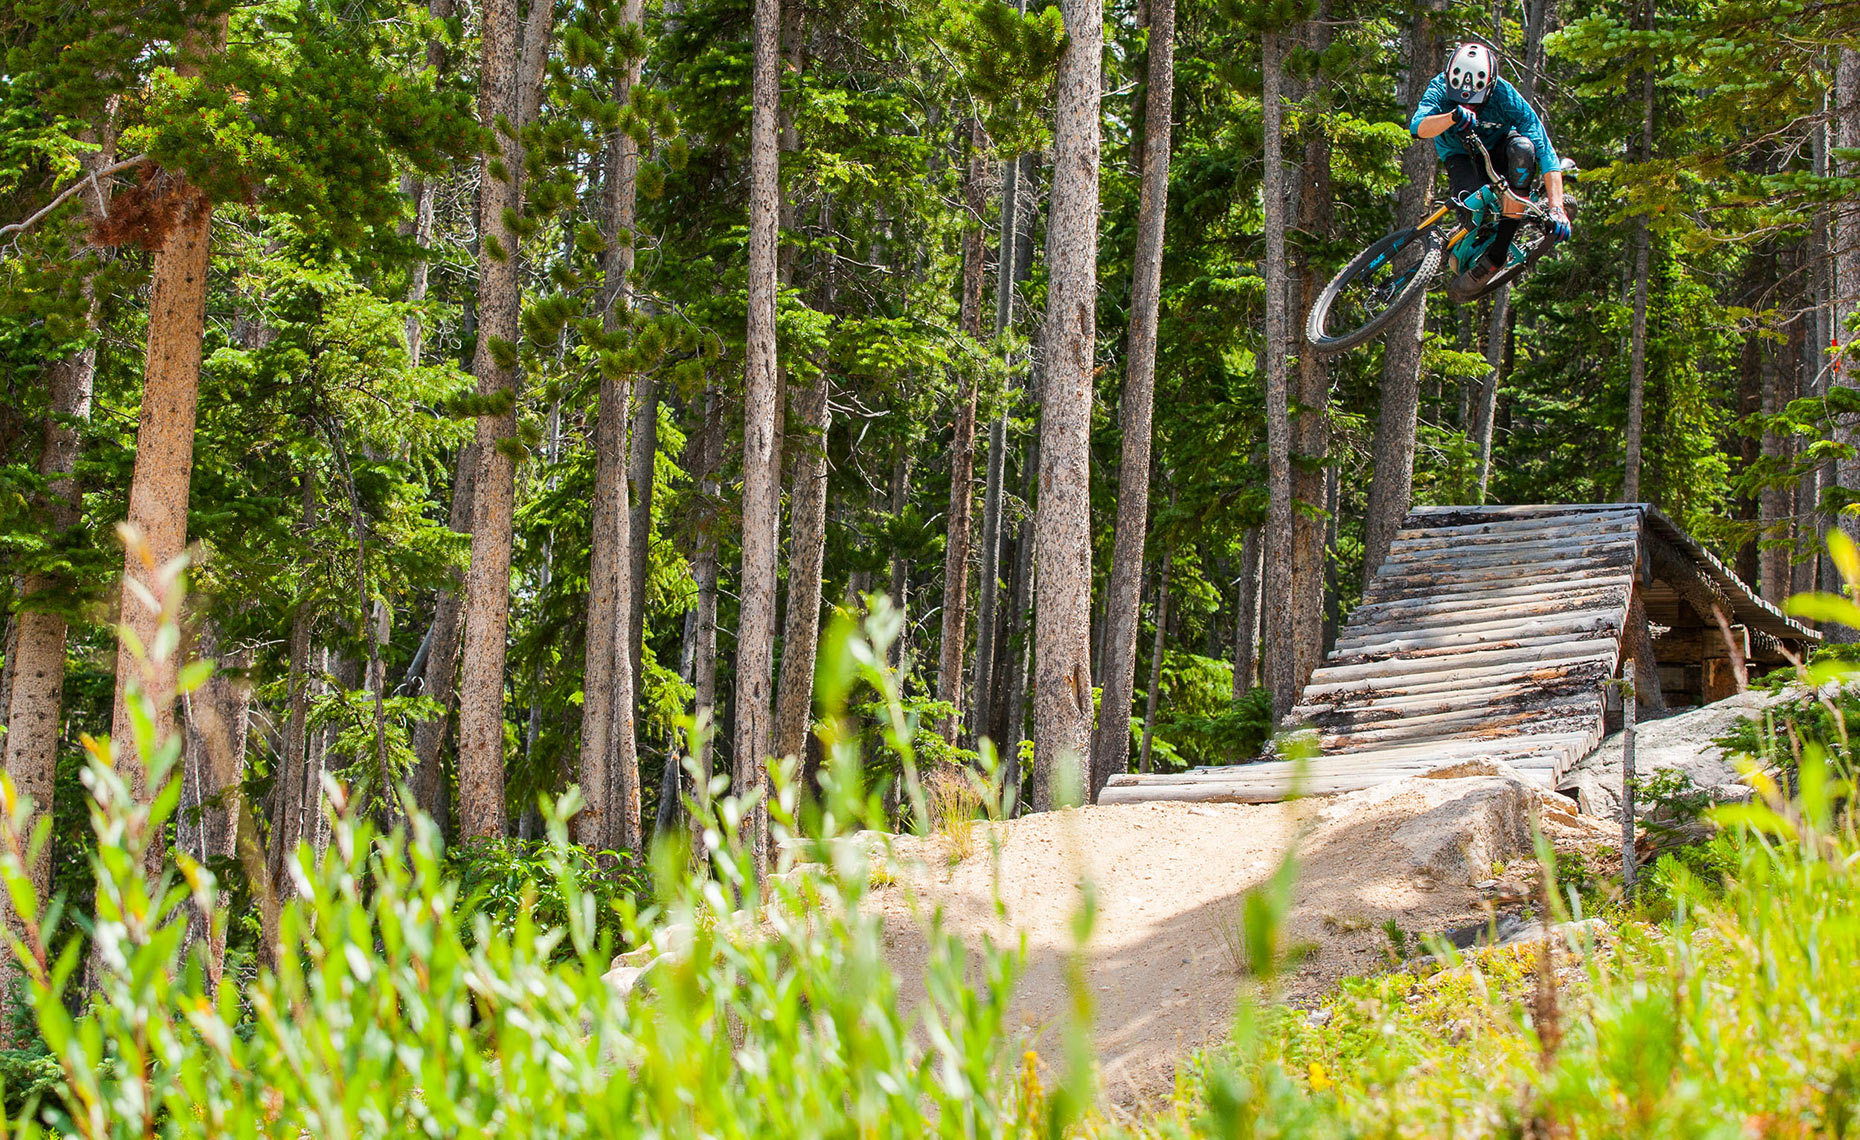 Dillon-Lemarr-Trestle-Bike-Park-Chris-Wellhausen-19